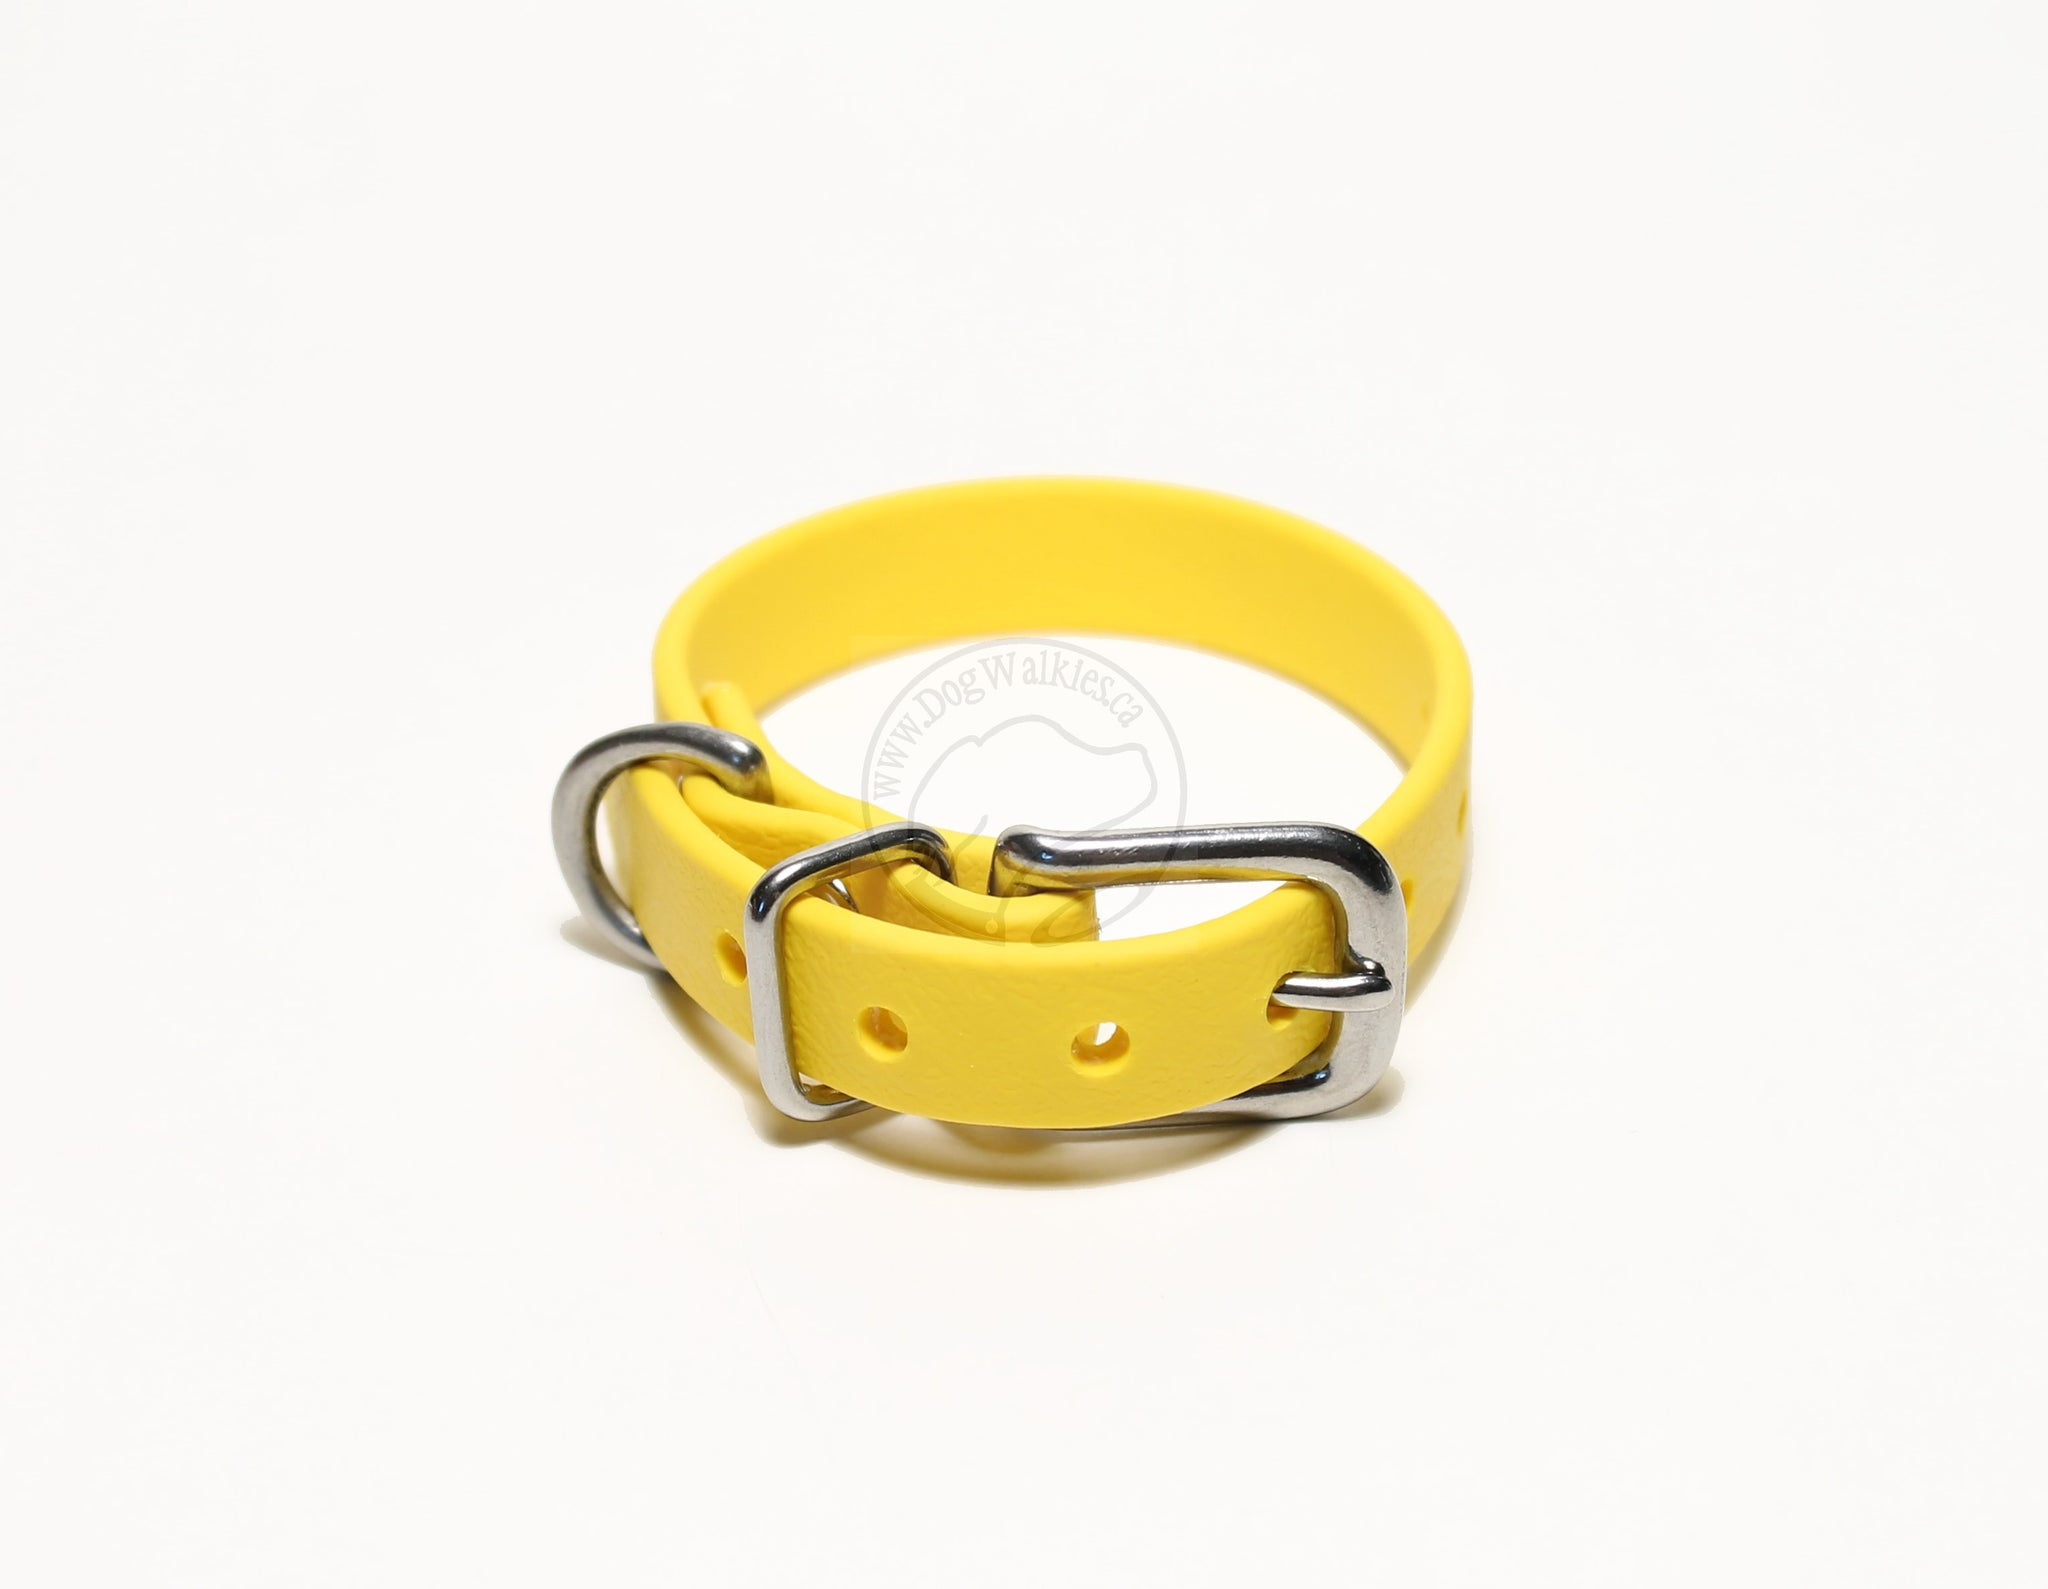 "Sunflower Yellow Biothane Small Dog Collar - 1/2"" (12mm) wide"